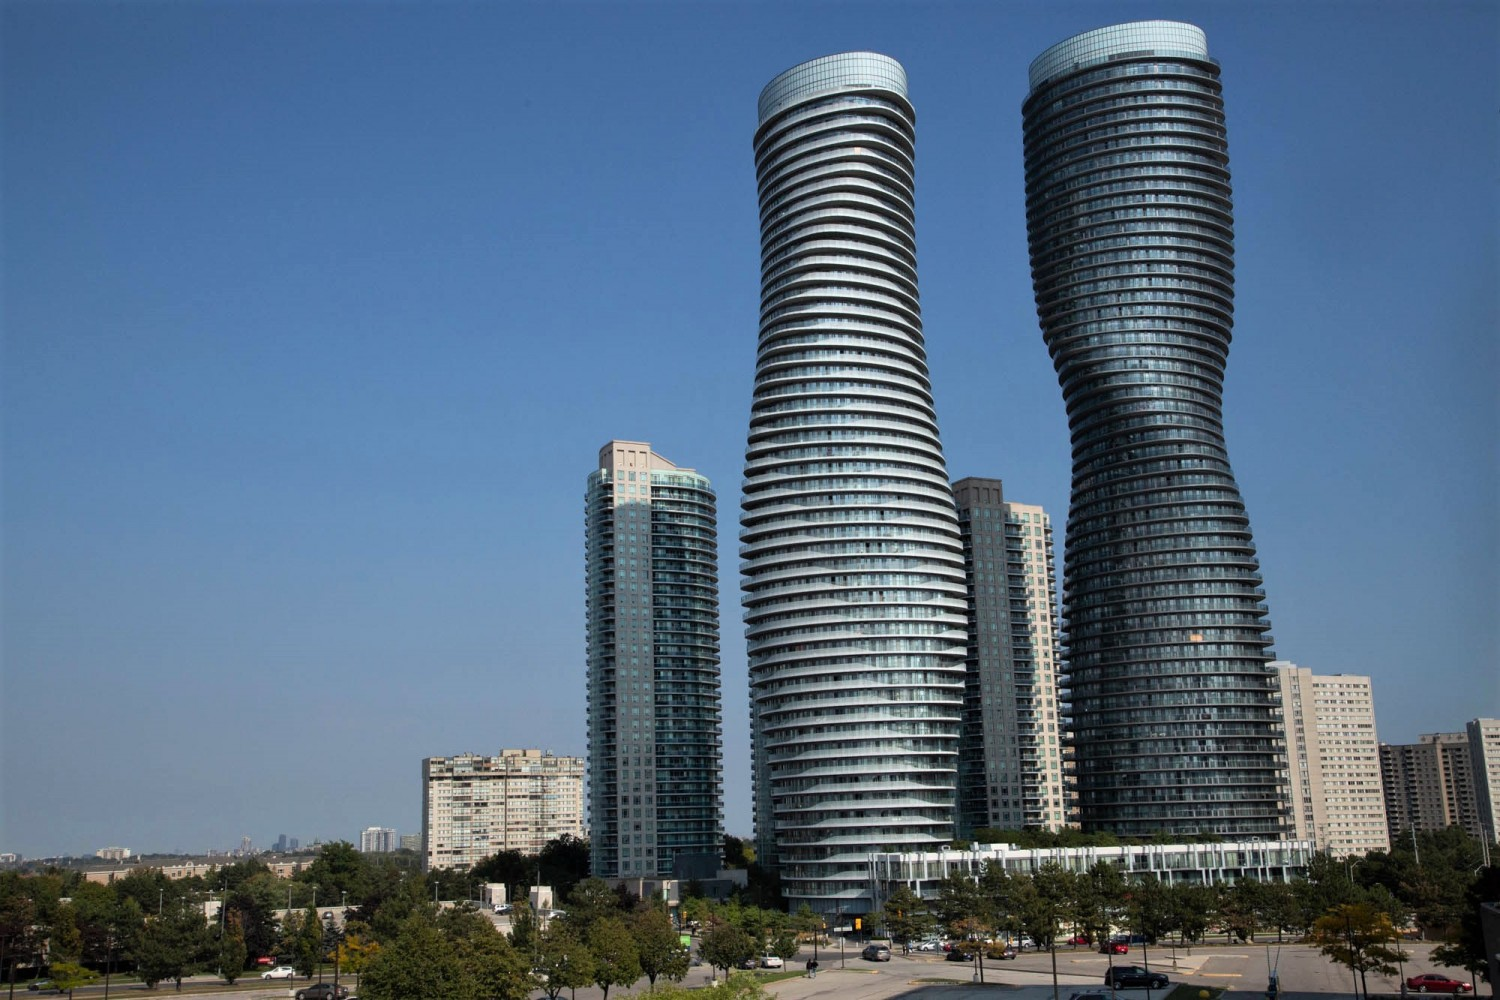 Mississauga's continued push for foreign investment to help define itself comes as Brampton and other cities do the same